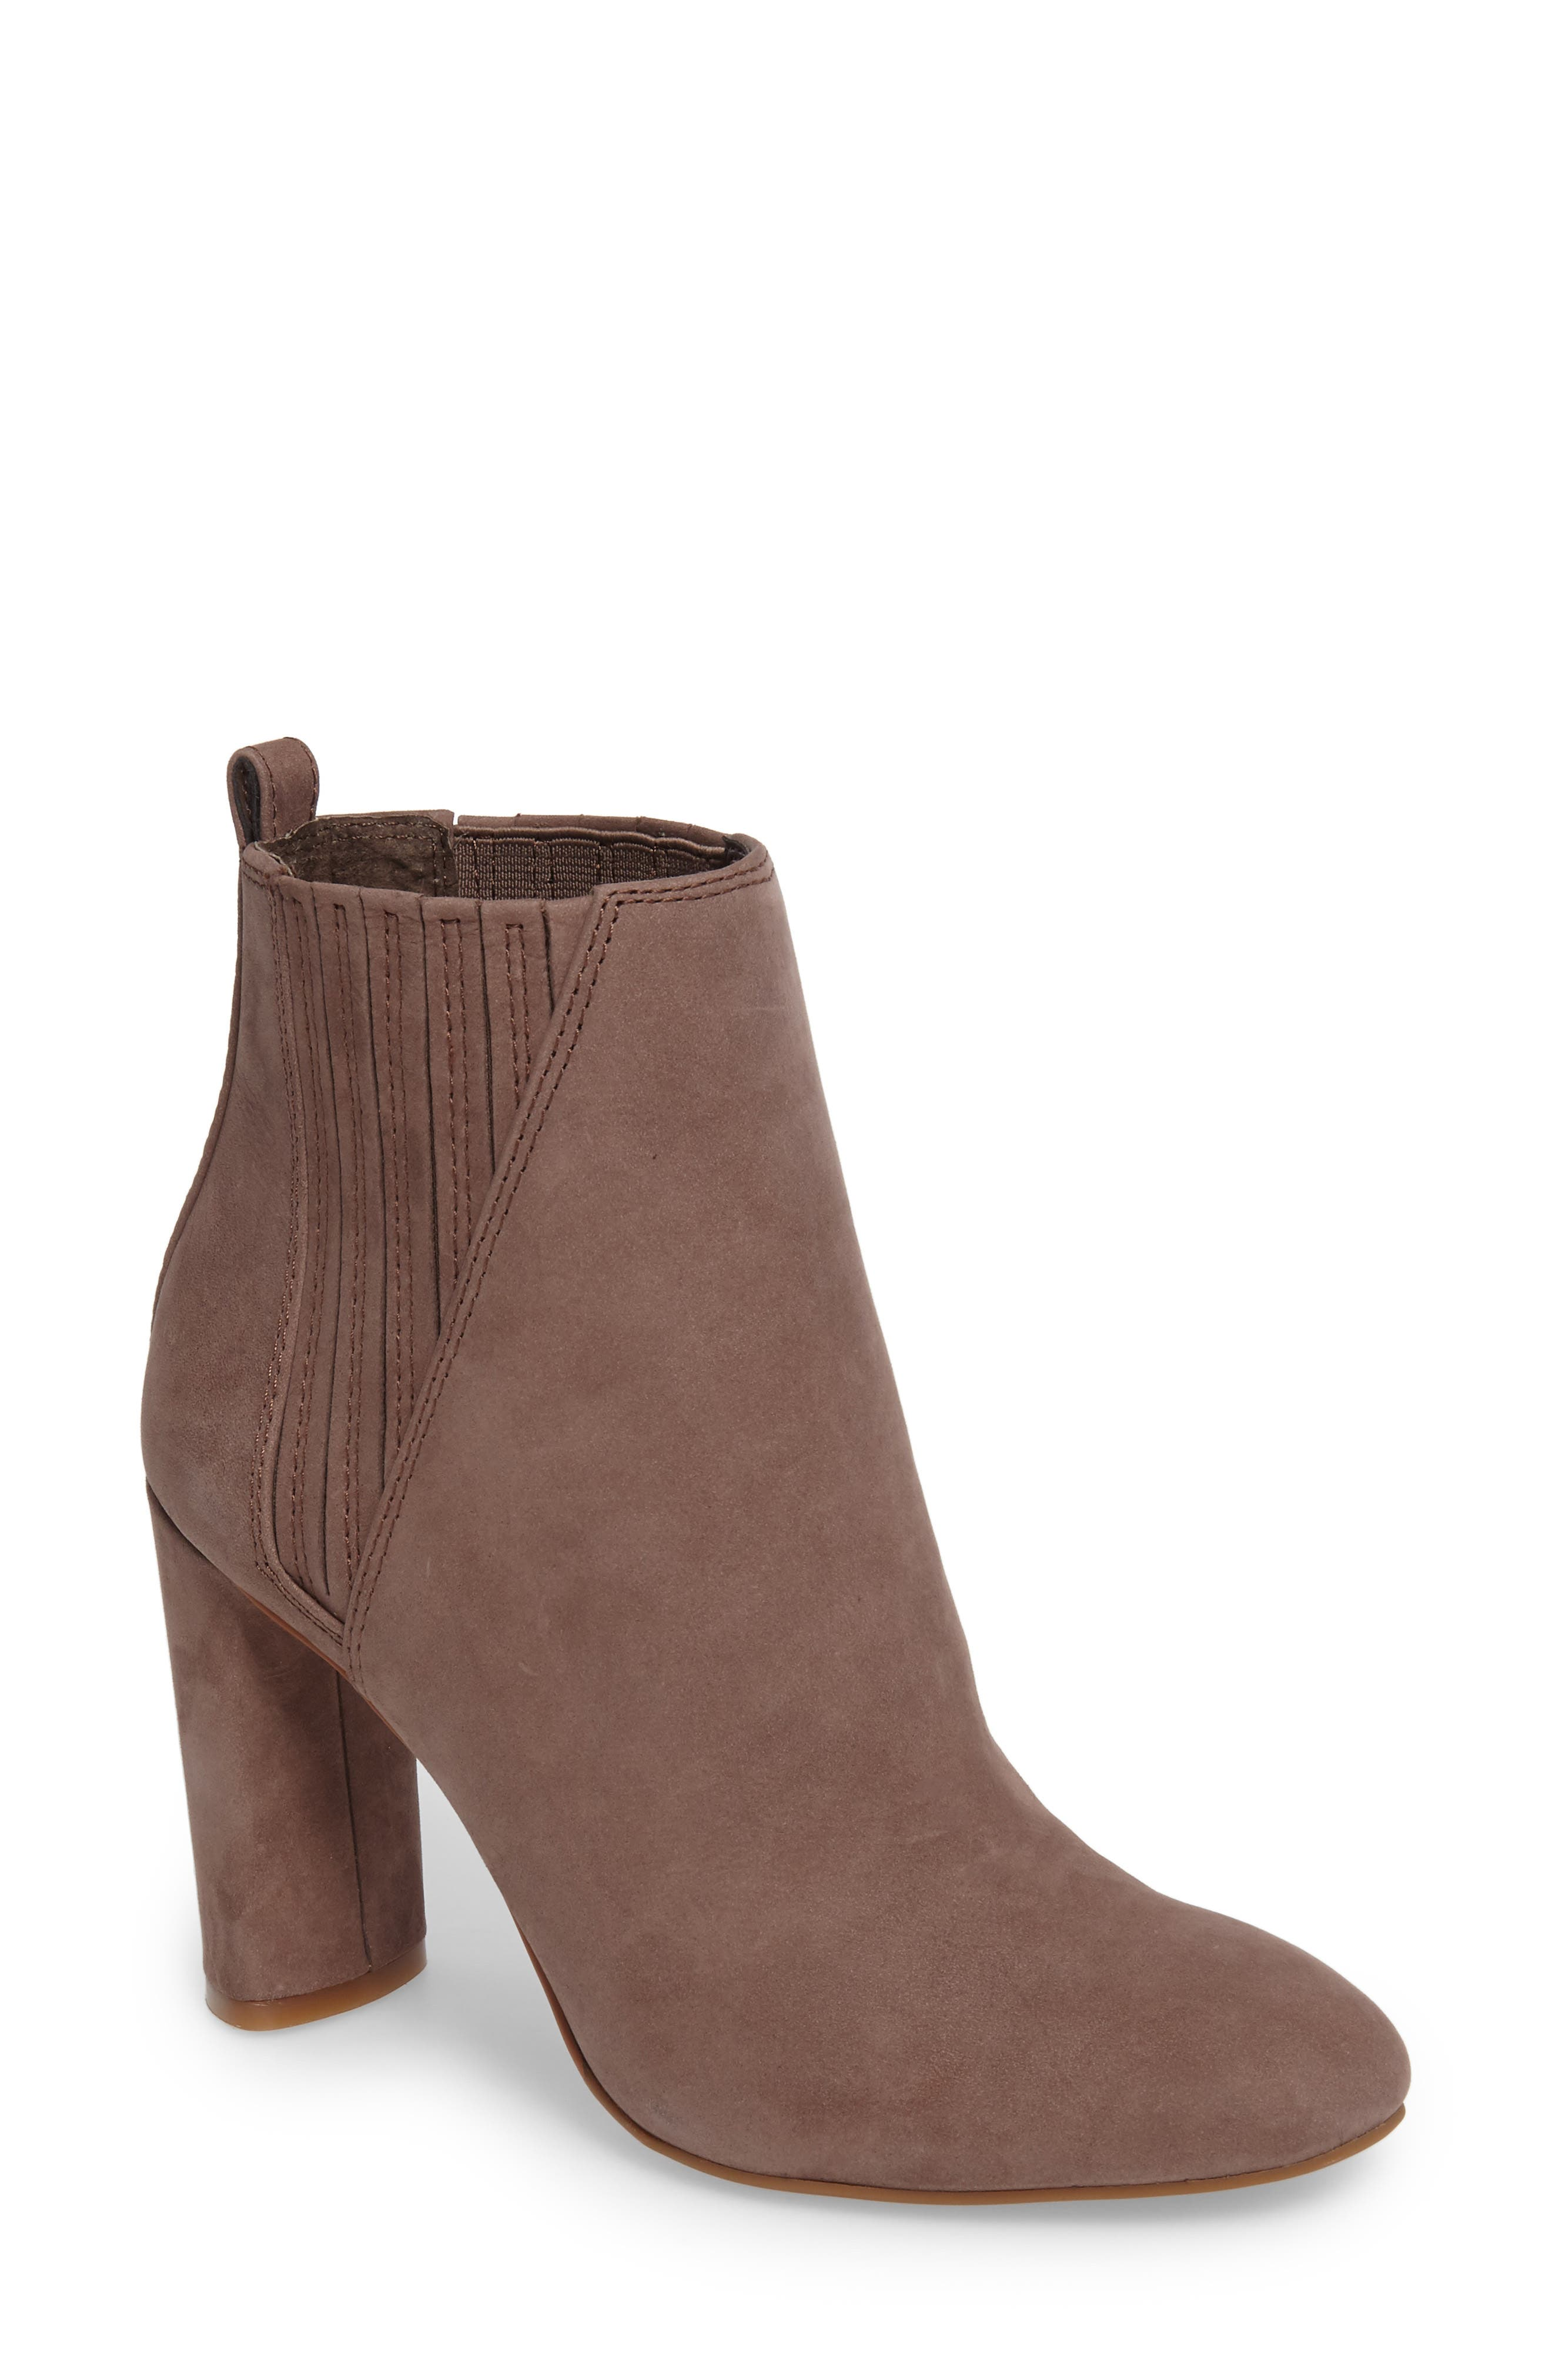 Alternate Image 1 Selected - Vince Camuto Fateen Bootie (Women)